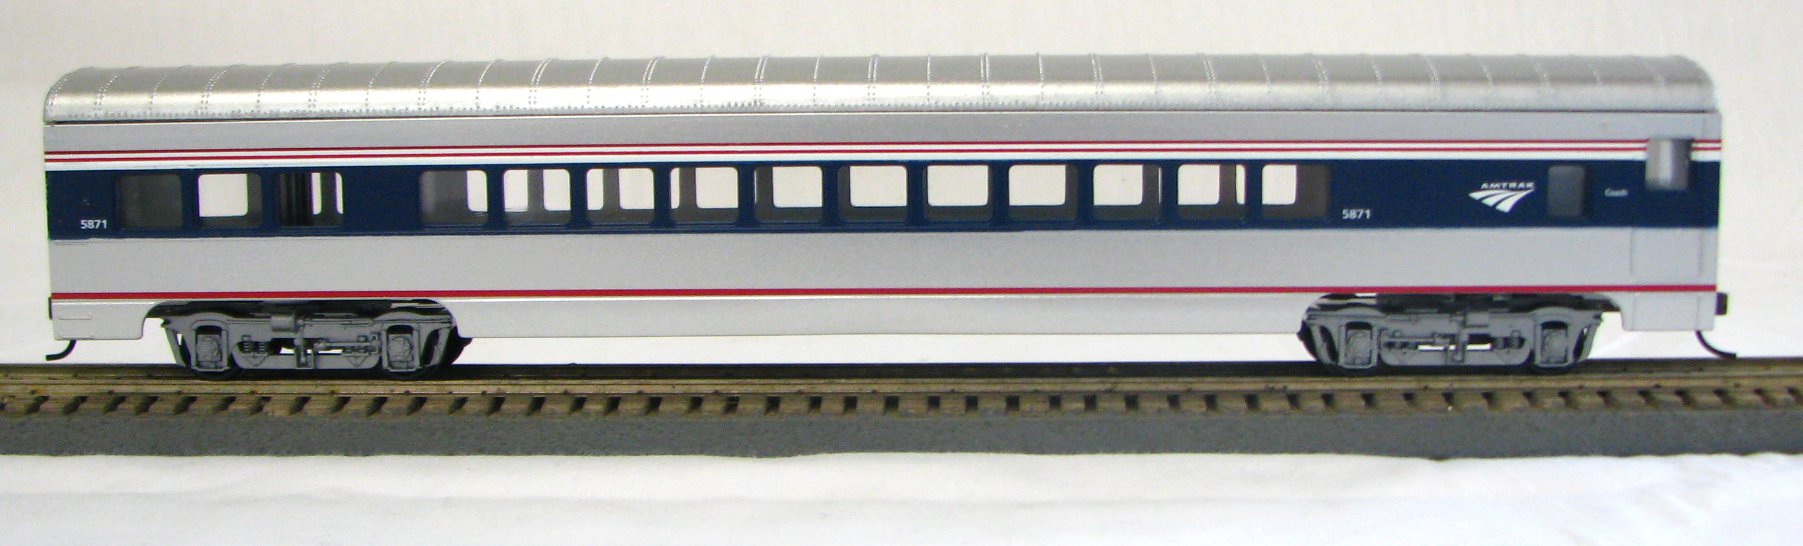 HO 72 Ft Passenger Car Coach #5869 Amtrak Phase 4b (Amtrak Wave logo) (1-094700)